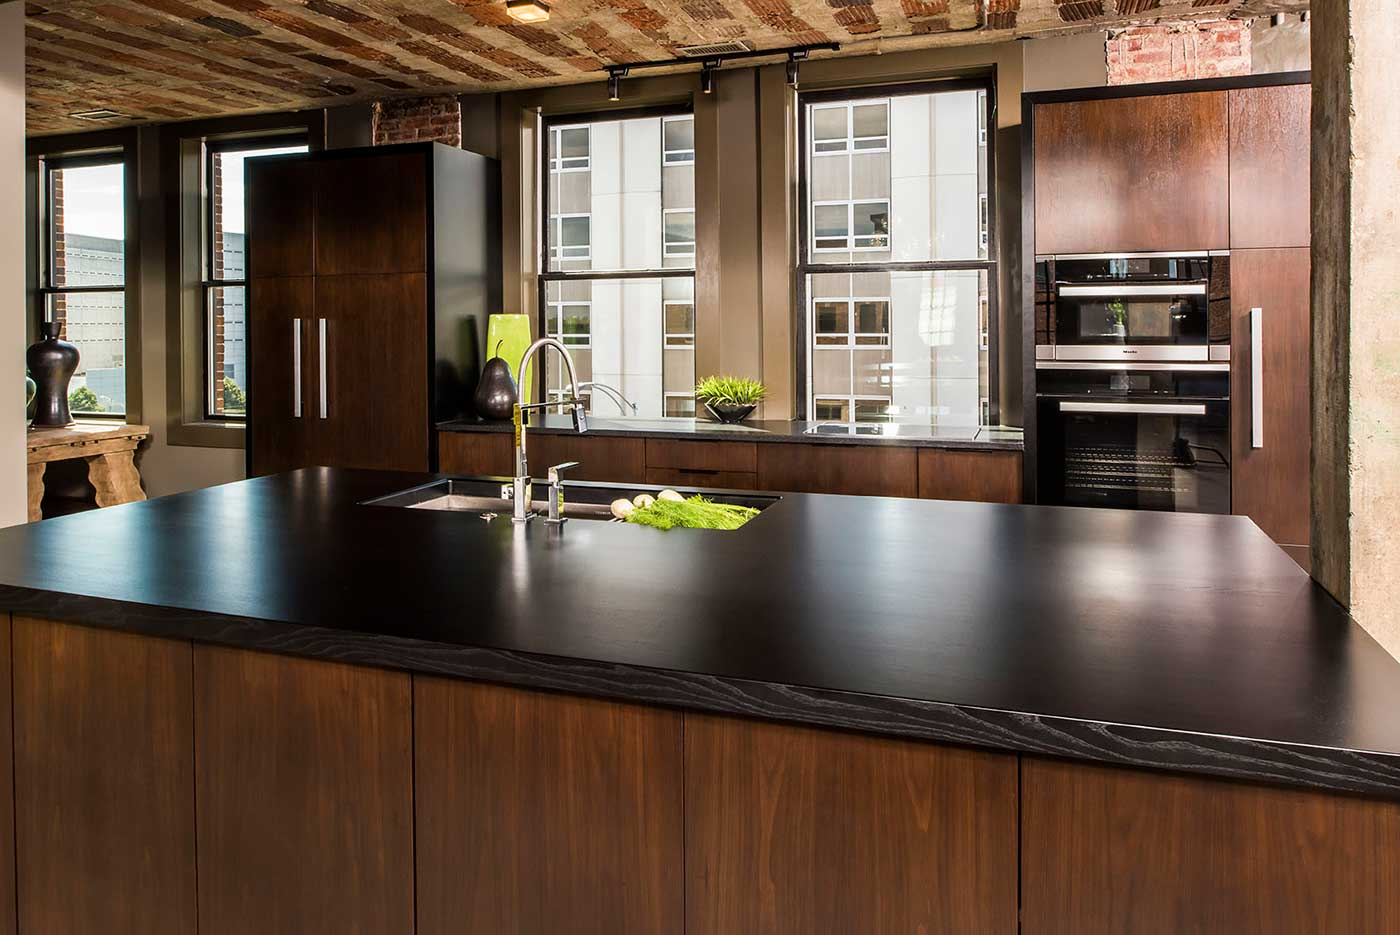 Stains and Glazes for Custom Wood Countertops in Kitchens and Bathrooms